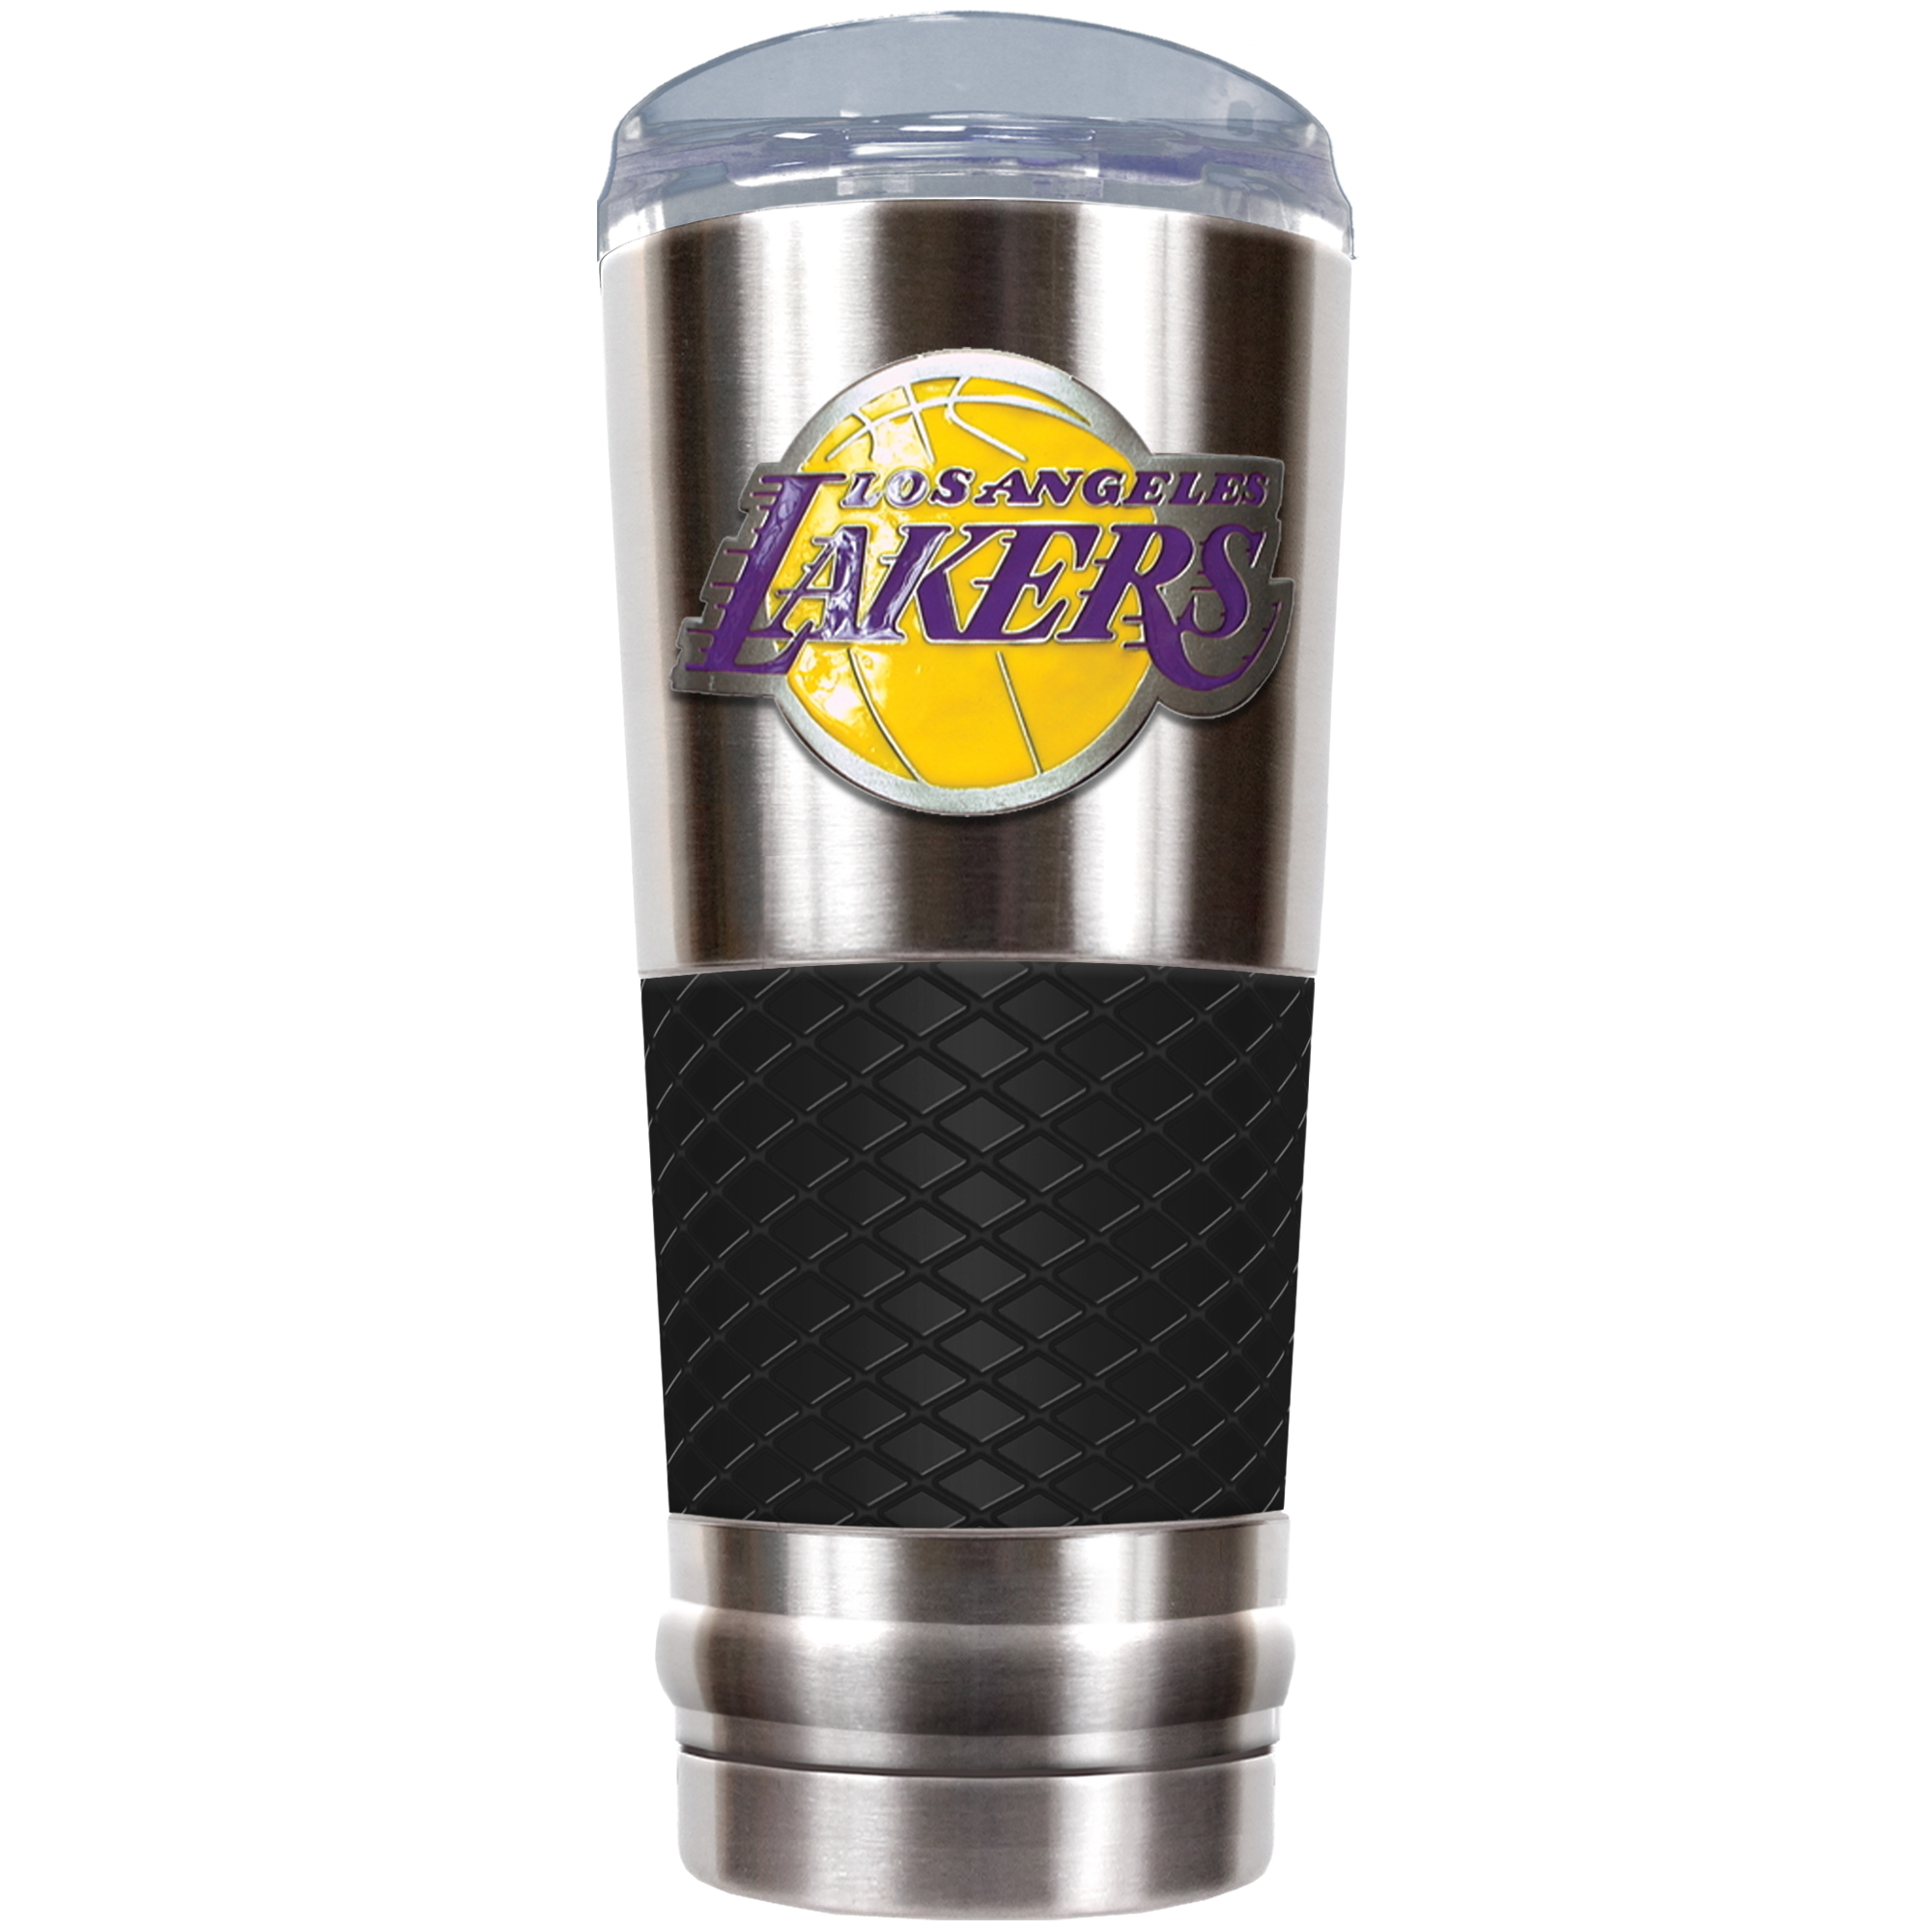 Los Angeles Lakers 24oz. Draft Tumbler - Black - No Size